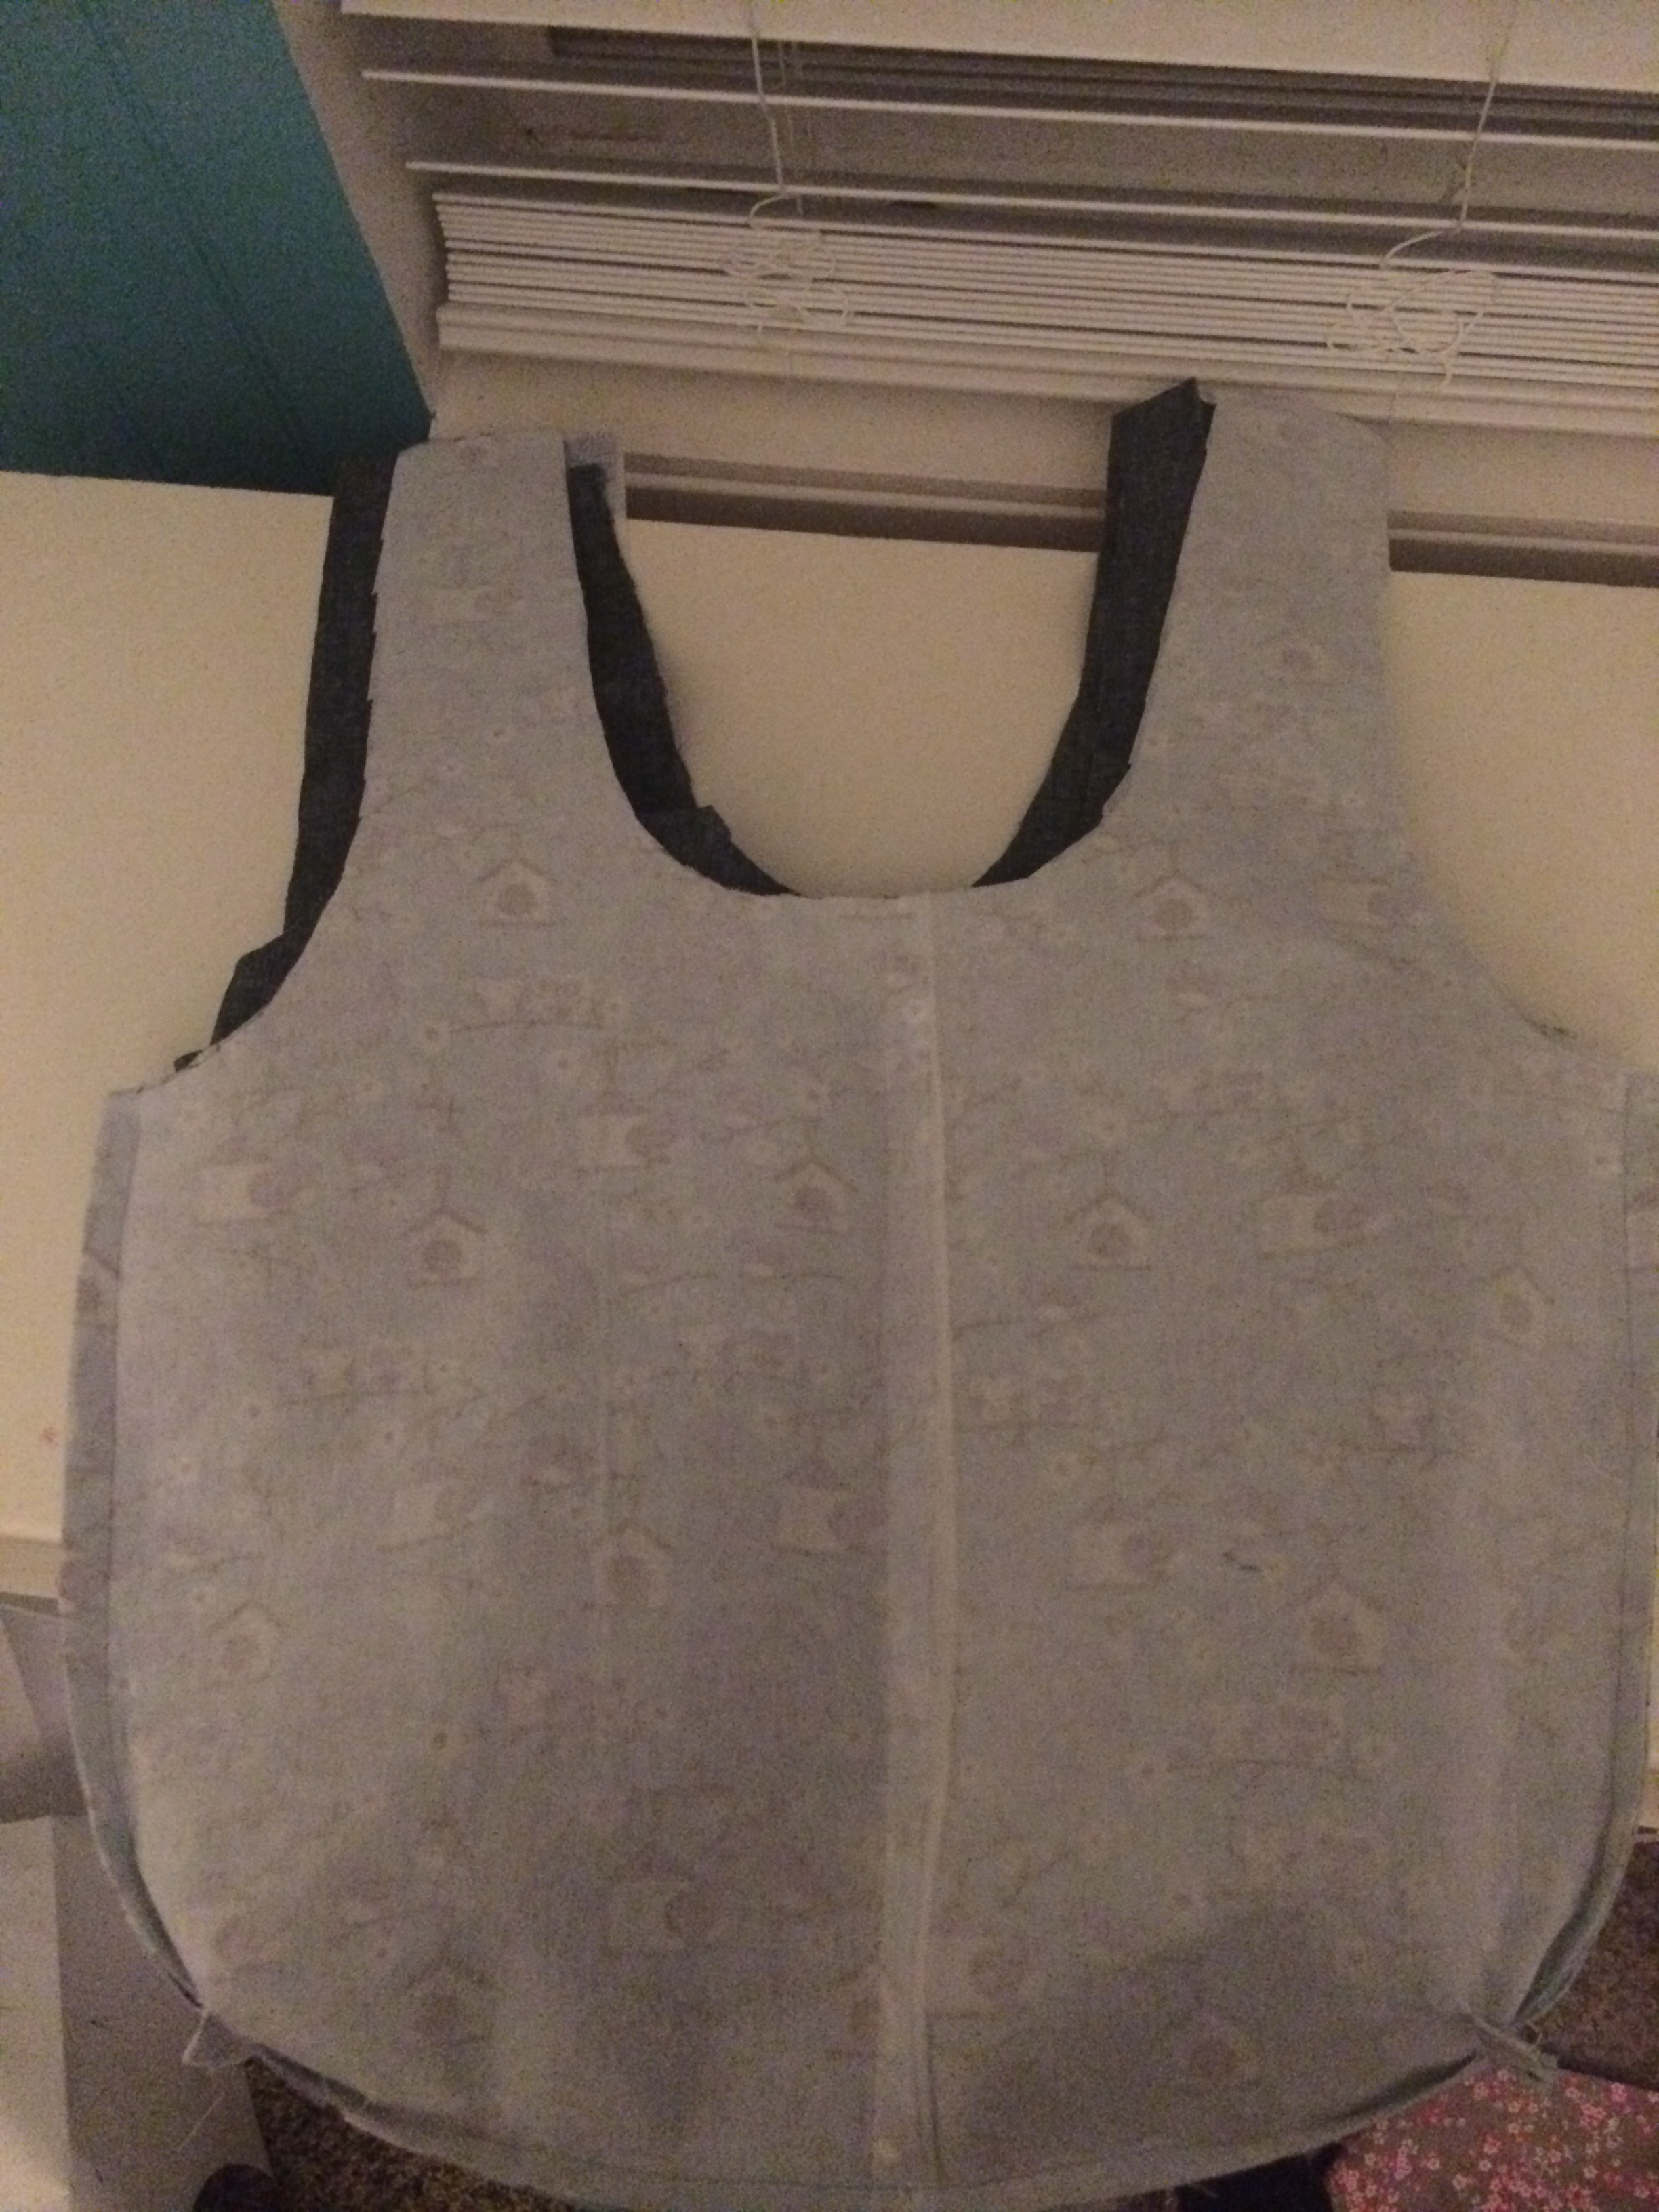 All about Reversible Hobo Beginner Bag Pattern The Stitching ... e9f667cdcf827